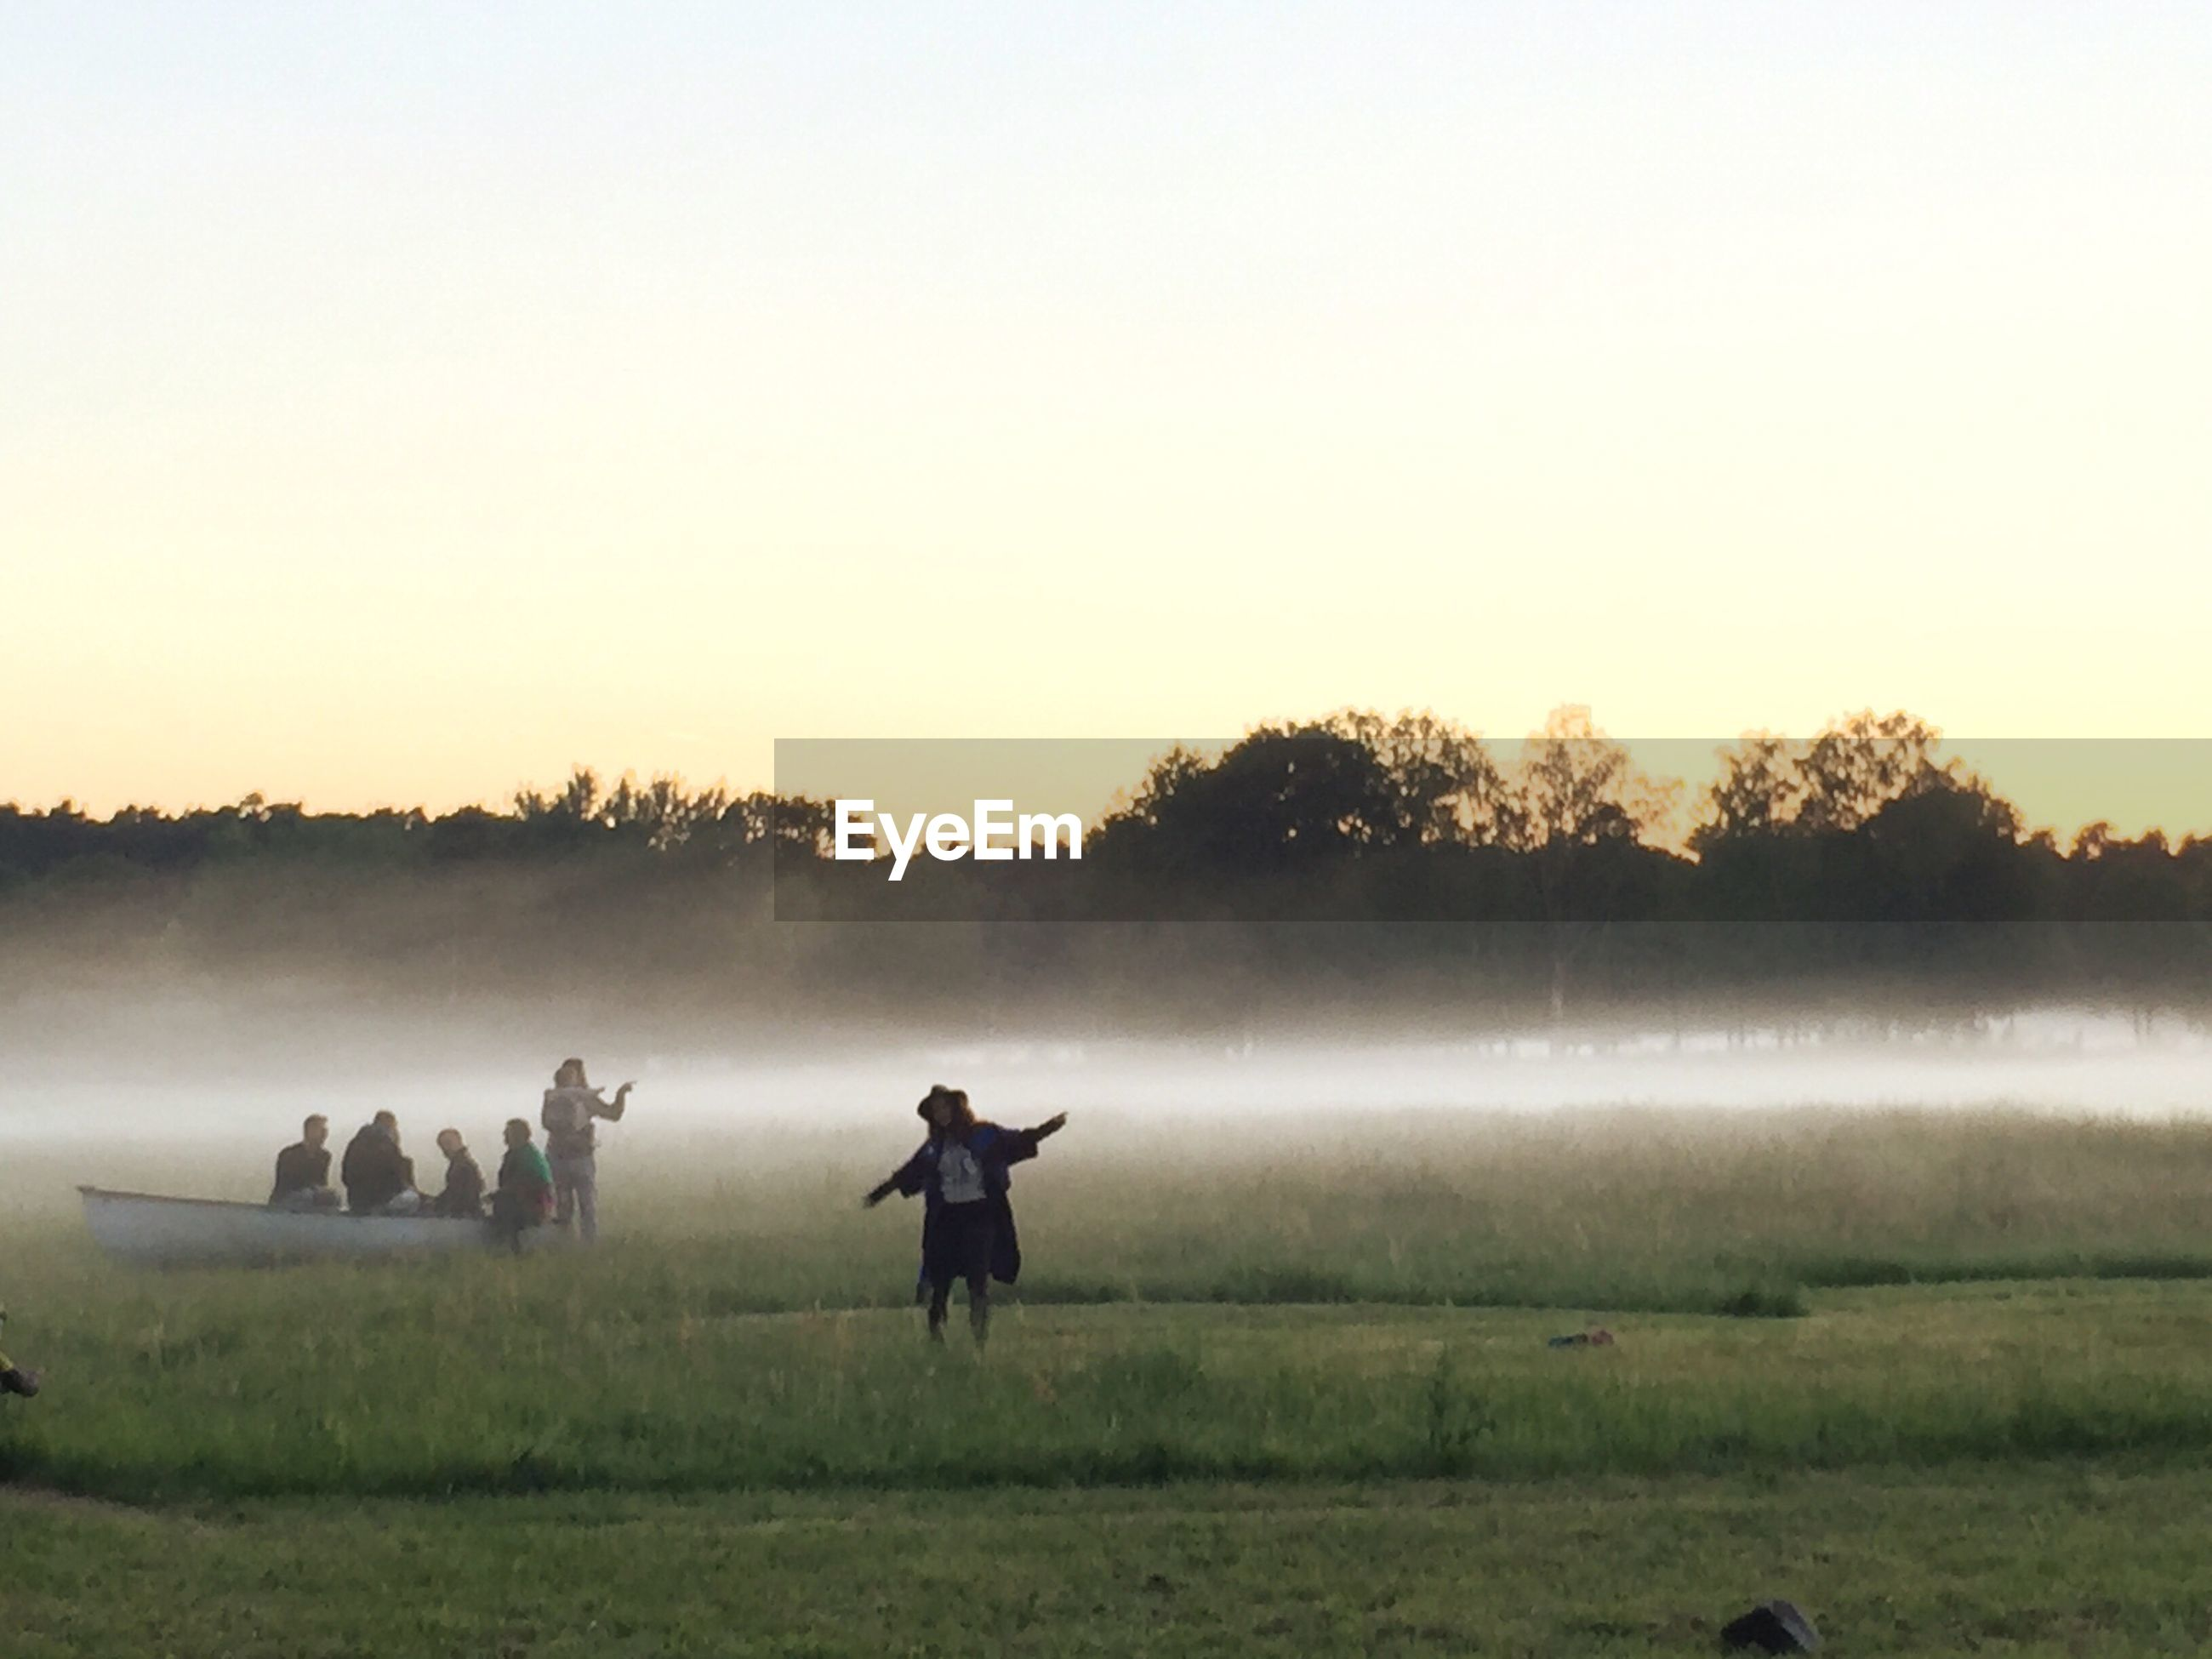 PEOPLE STANDING ON FIELD AGAINST CLEAR SKY